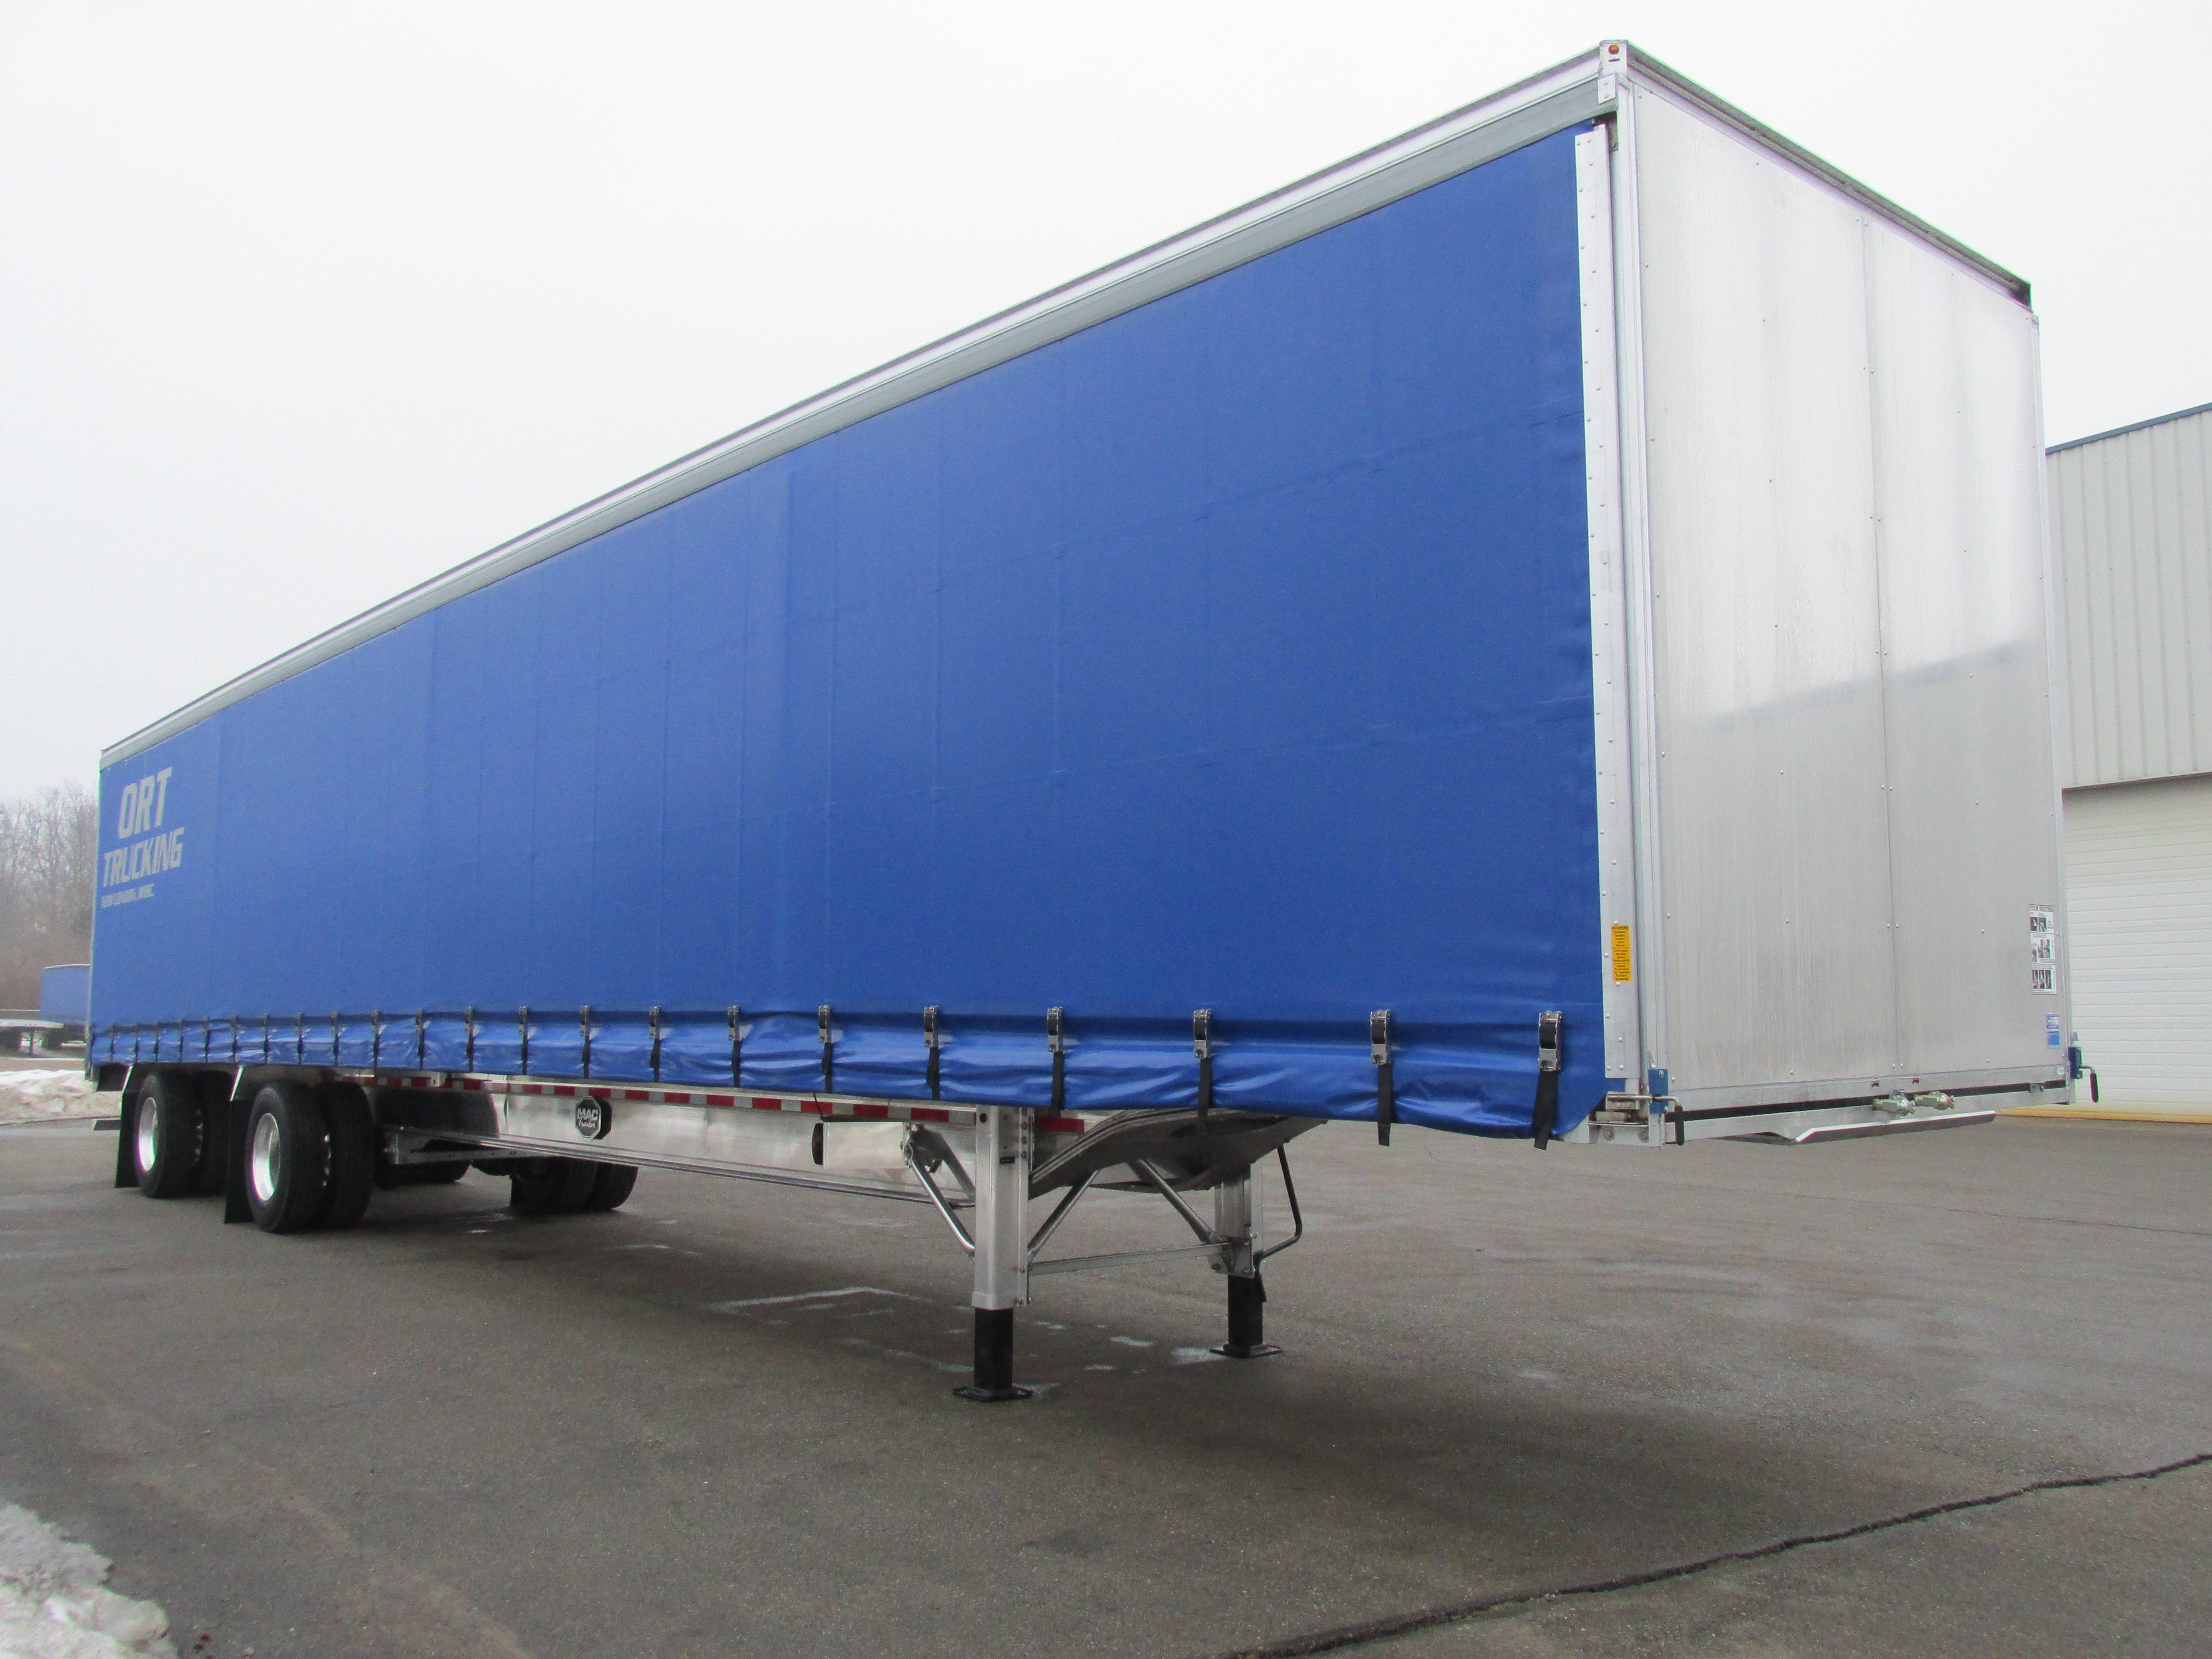 Produits gal seriem also Holland Type Fifth Wheel Trailer Parts 590829980 together with Royalty Vrije Stock Foto S Vijfde Wiel Image14218458 as well East Frameless End Dump V1 besides Watch. on frameless dump trailer